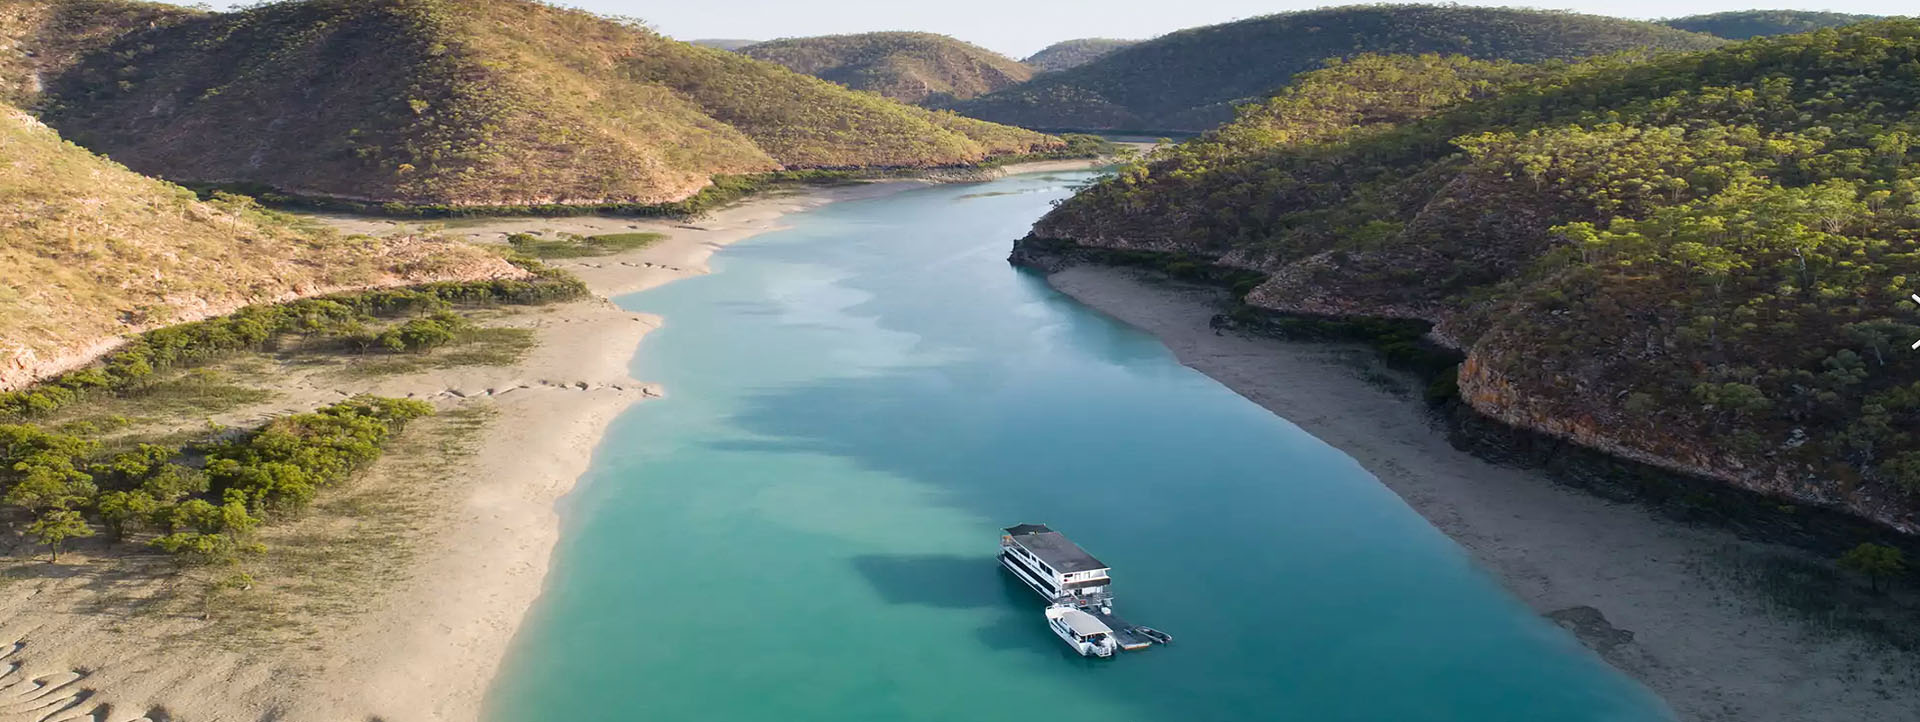 4 NIGHT GETAWAY CRUISE aerial boat house river